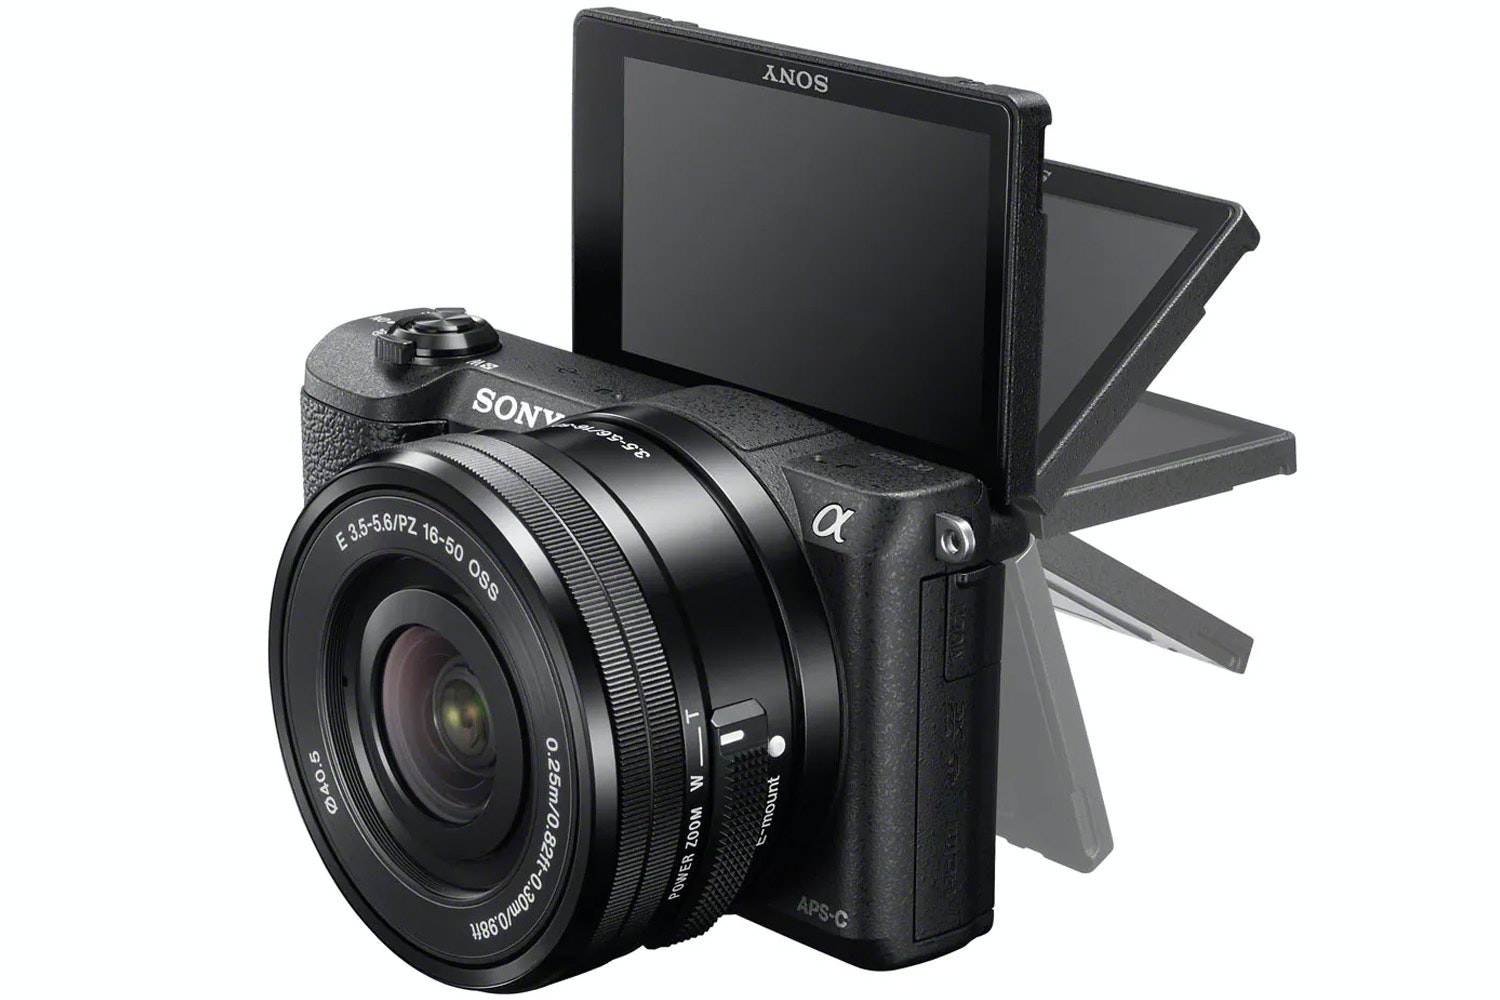 Sony a5100 Digital Camera